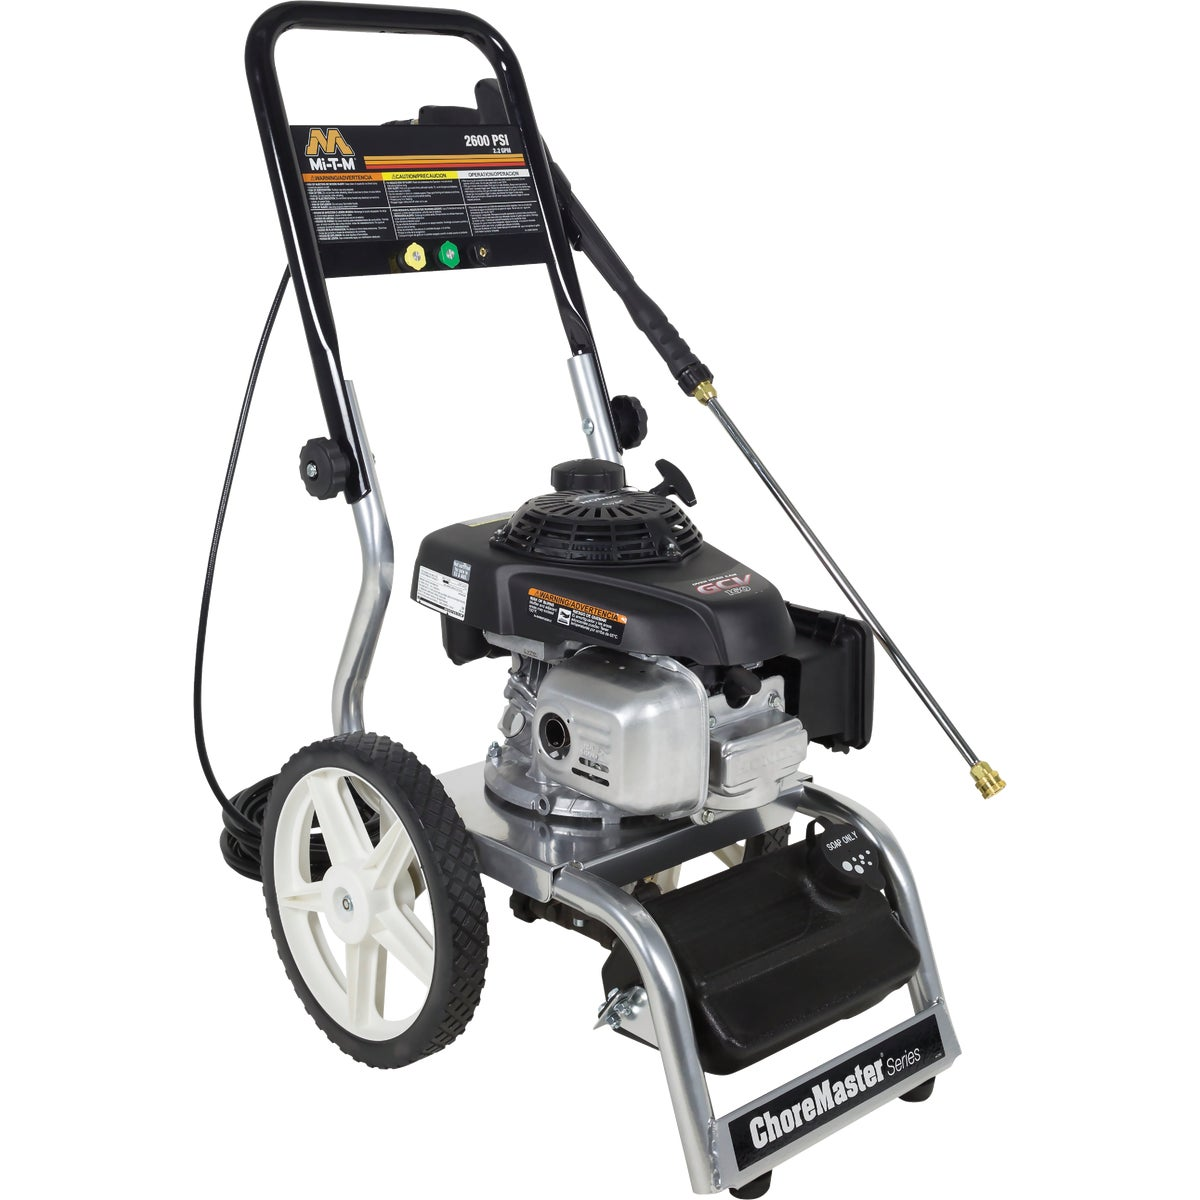 2600PSI PRESSURE WASHER